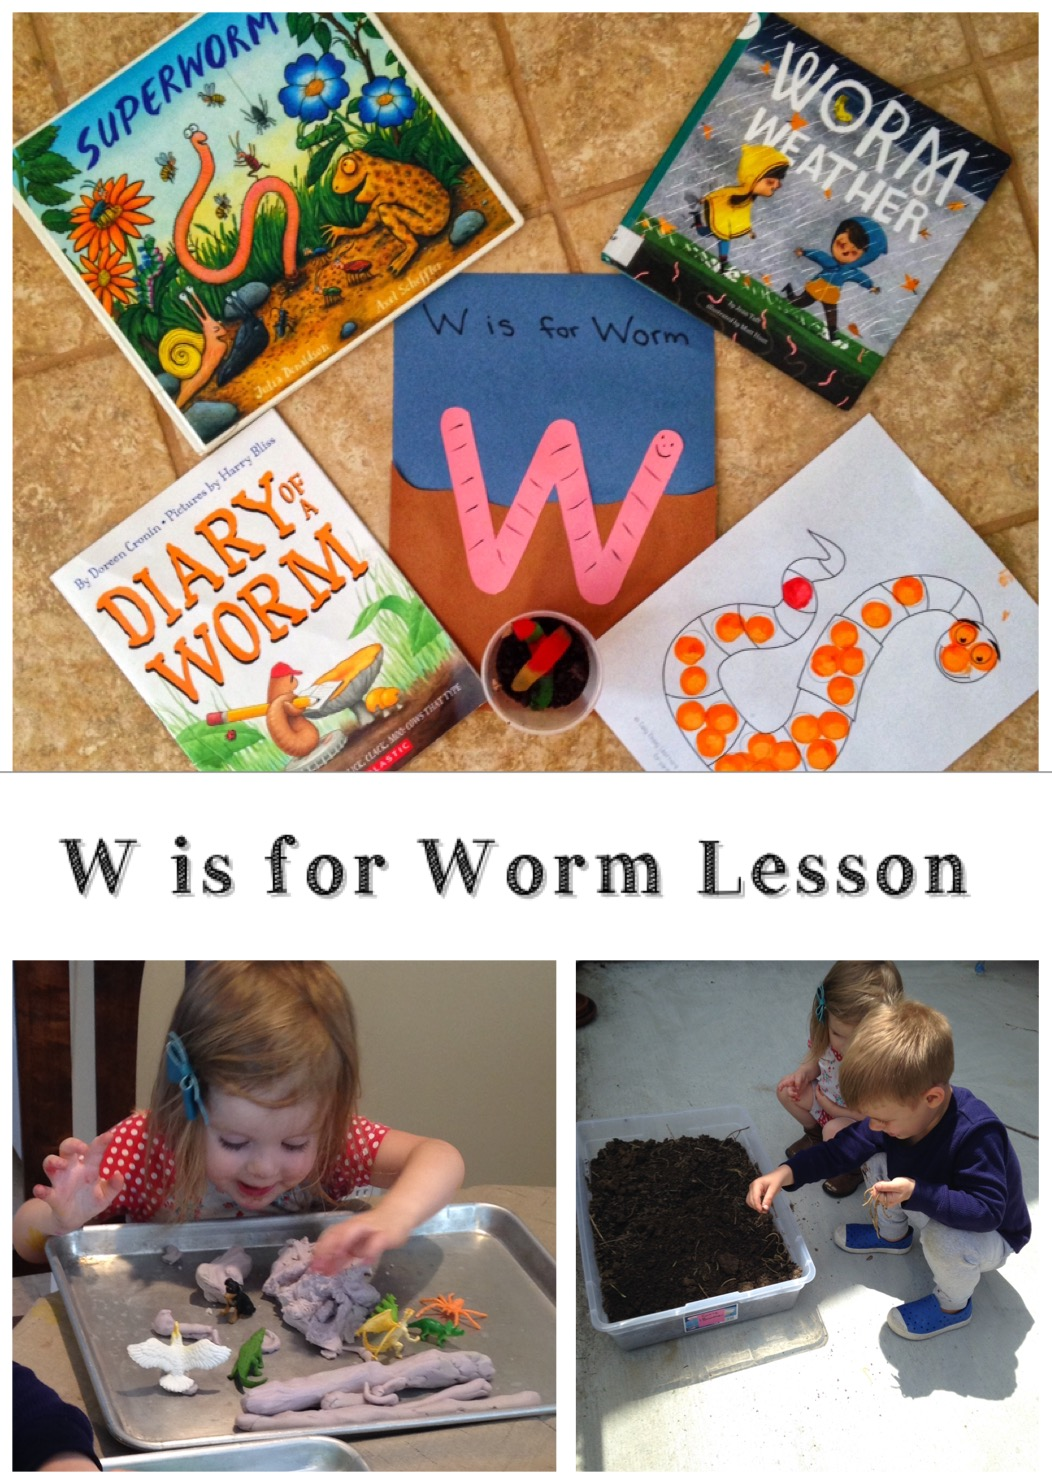 W is for Worm Lesson